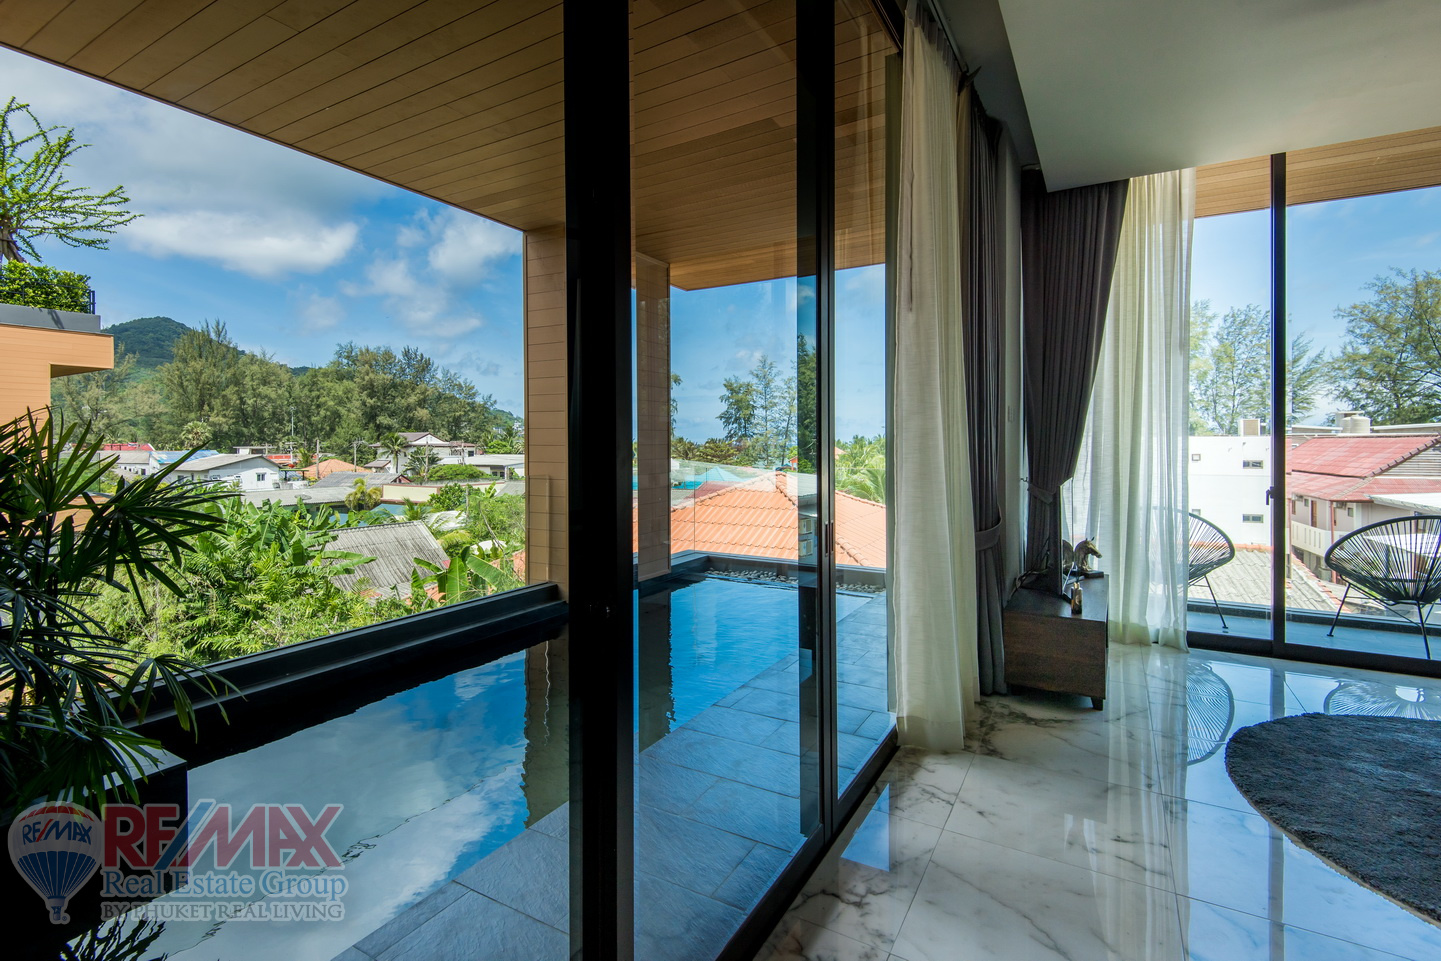 2 BEDROOM CONDO WITH PRIVATE POOL IN KAMALA FOR RENT